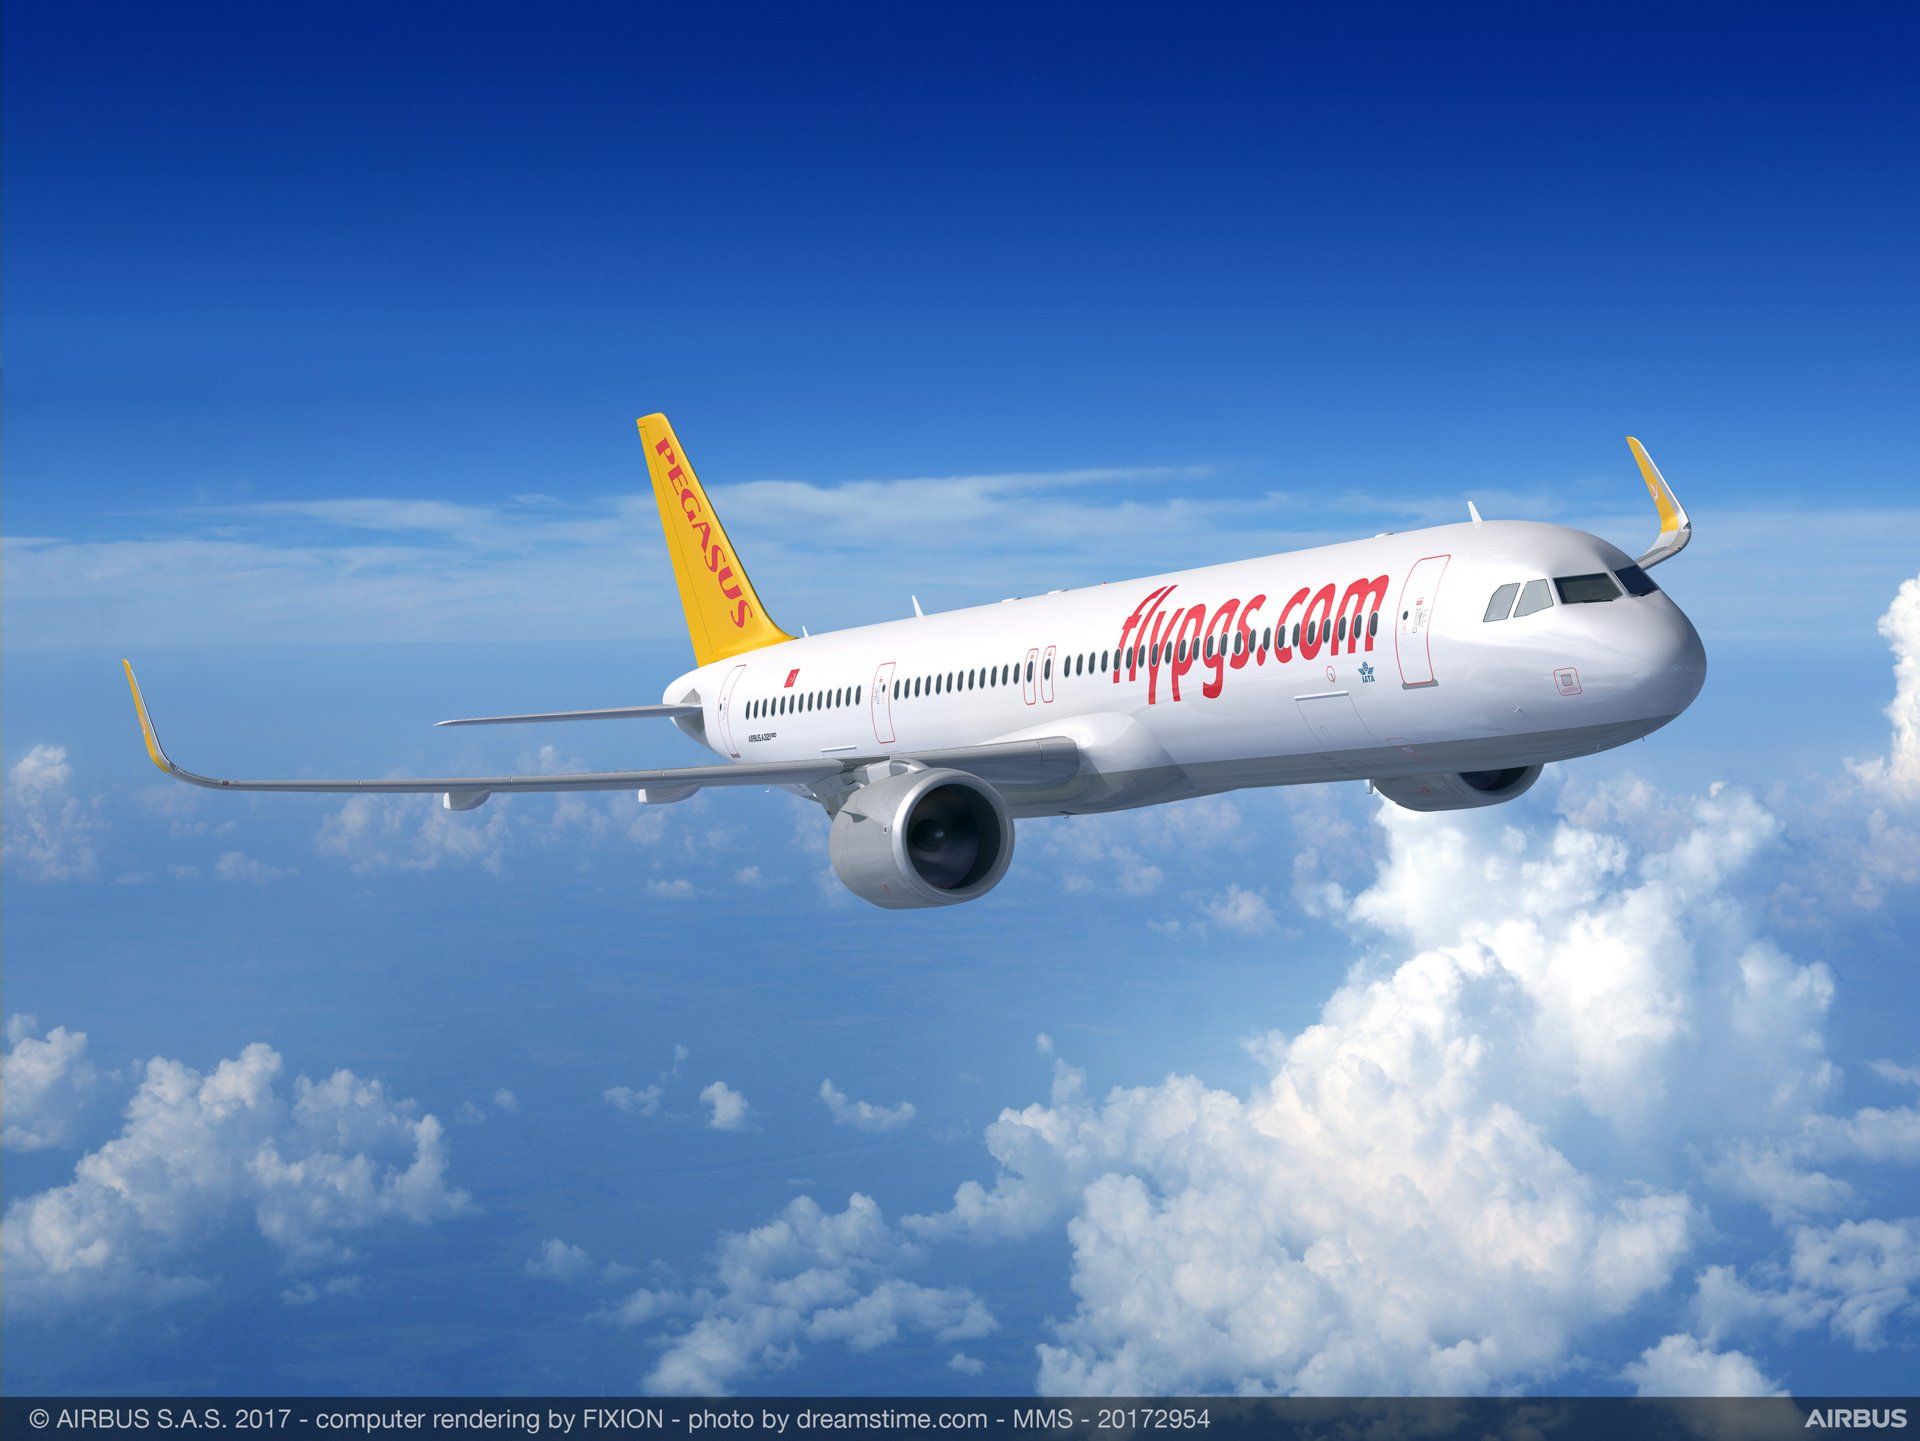 Pegasus Airlines, the leading Low-Cost-Carrier (LCC) in Turkey, has placed an order for 25 A321neo ACF (Airbus Cabin Flex configuration).